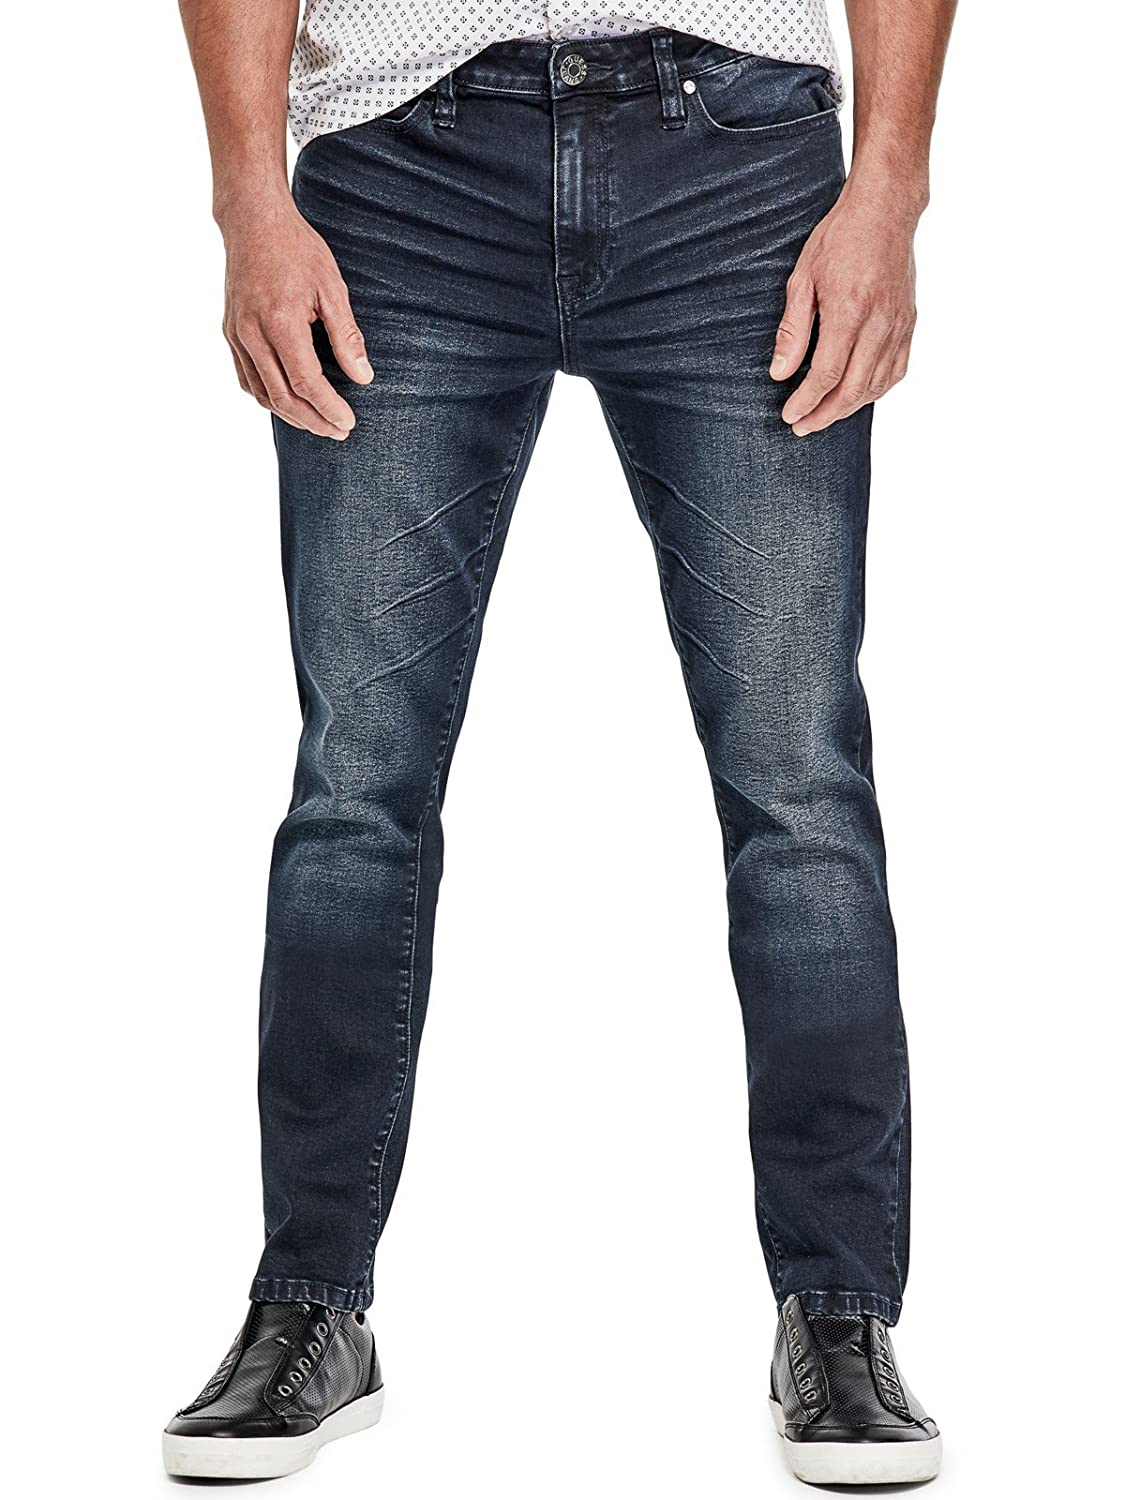 GUESS Factory PANTS メンズ B07D67QBST 33 / 32|Natural Dark Wash Natural Dark Wash 33 / 32